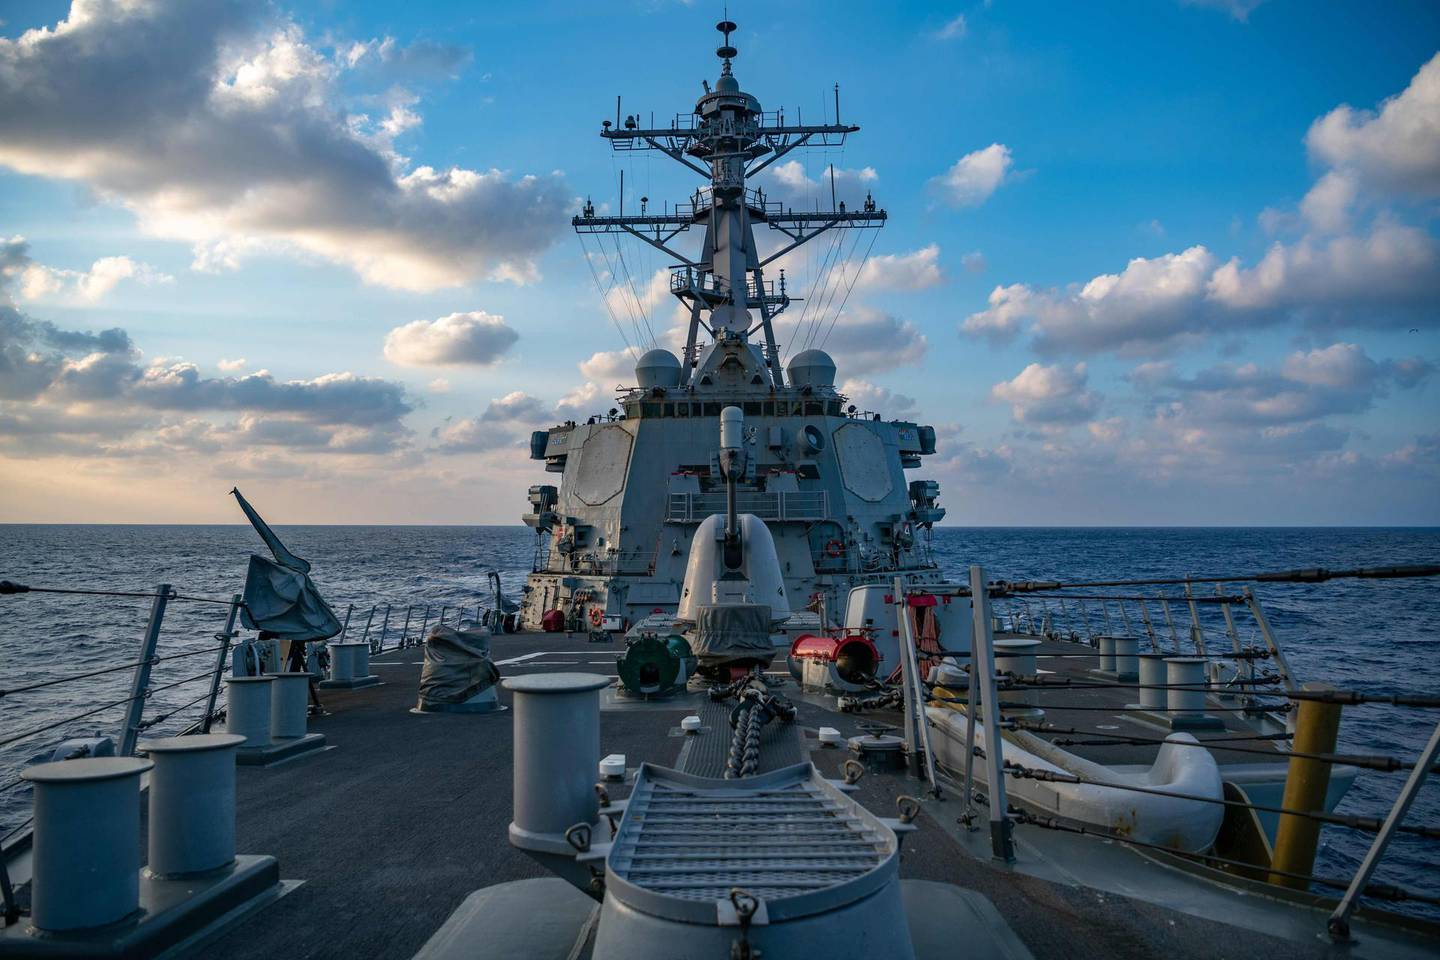 """This US Navy photo released April 29, 2020 shows The Arleigh-Burke class guided-missile destroyer USS Barry (DDG 52) conducting underway operations on April 28, 2020 in the South China Sea.  Barry is forward-deployed to the US 7th Fleet area of operations in support of security and stability in the Indo-Pacific region. A US Navy  guided-missile destroyer sailed through waters near the Paracel islands in the South China Sea challenging China's claim to the area, the Navy said April 29, 2020. The USS Barry undertook the so-called """"freedom of navigation operation"""" on Tuesday, a week after Beijing upped its claims to the region by designating an official administrative district for the islands.  - RESTRICTED TO EDITORIAL USE - MANDATORY CREDIT """"AFP PHOTO US NAVY/SAMUEL HARDGROVE/HANDOUT """" - NO MARKETING - NO ADVERTISING CAMPAIGNS - DISTRIBUTED AS A SERVICE TO CLIENTS  / AFP / US NAVY / Samuel HARDGROVE / RESTRICTED TO EDITORIAL USE - MANDATORY CREDIT """"AFP PHOTO US NAVY/SAMUEL HARDGROVE/HANDOUT """" - NO MARKETING - NO ADVERTISING CAMPAIGNS - DISTRIBUTED AS A SERVICE TO CLIENTS"""